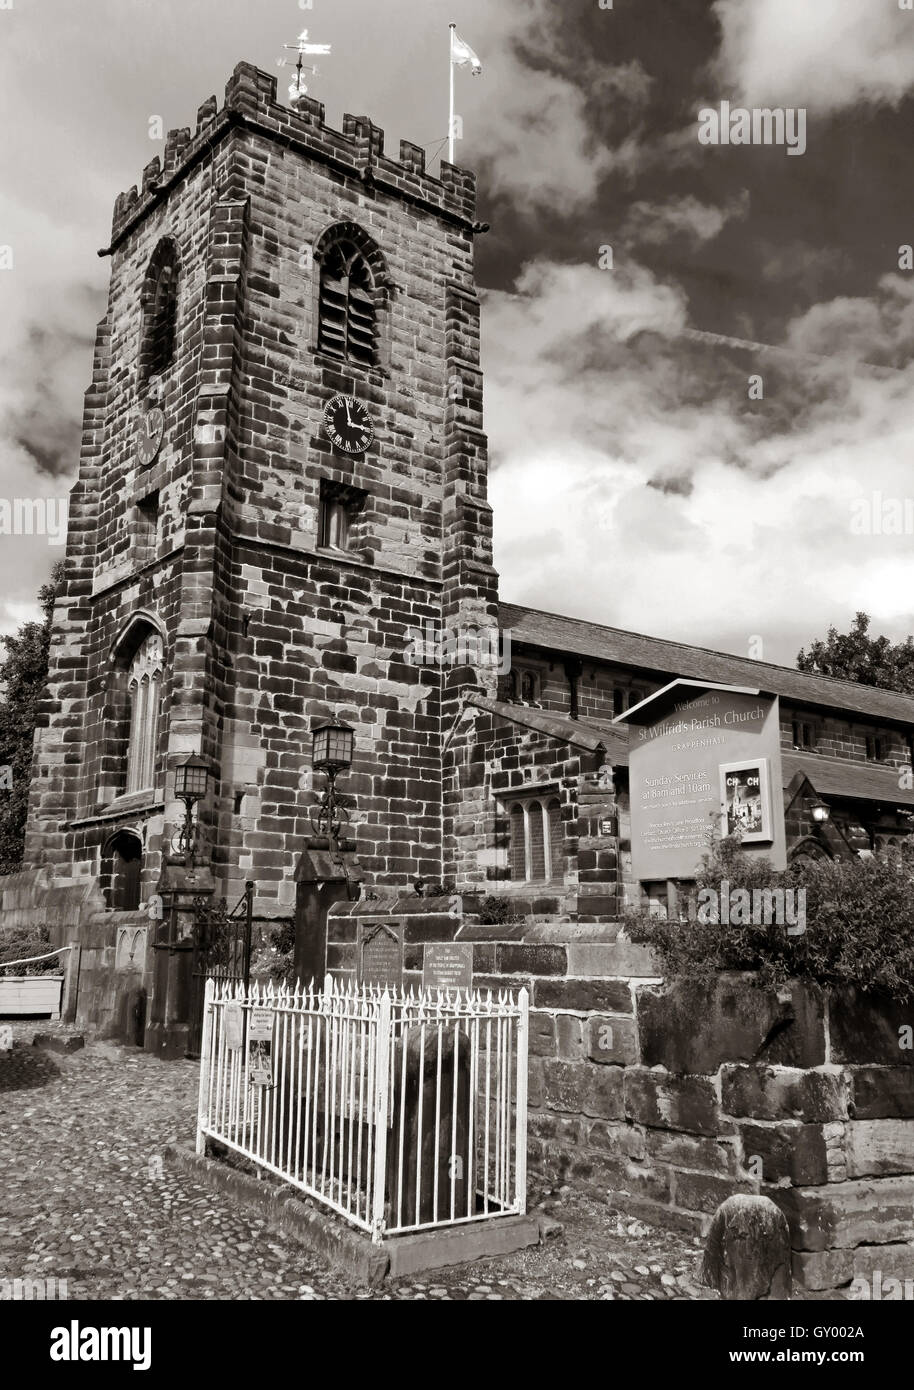 Exterior of St Wilfrids church tower,Grappenhall,Warrington,Cheshire England UK B/W - Stock Image